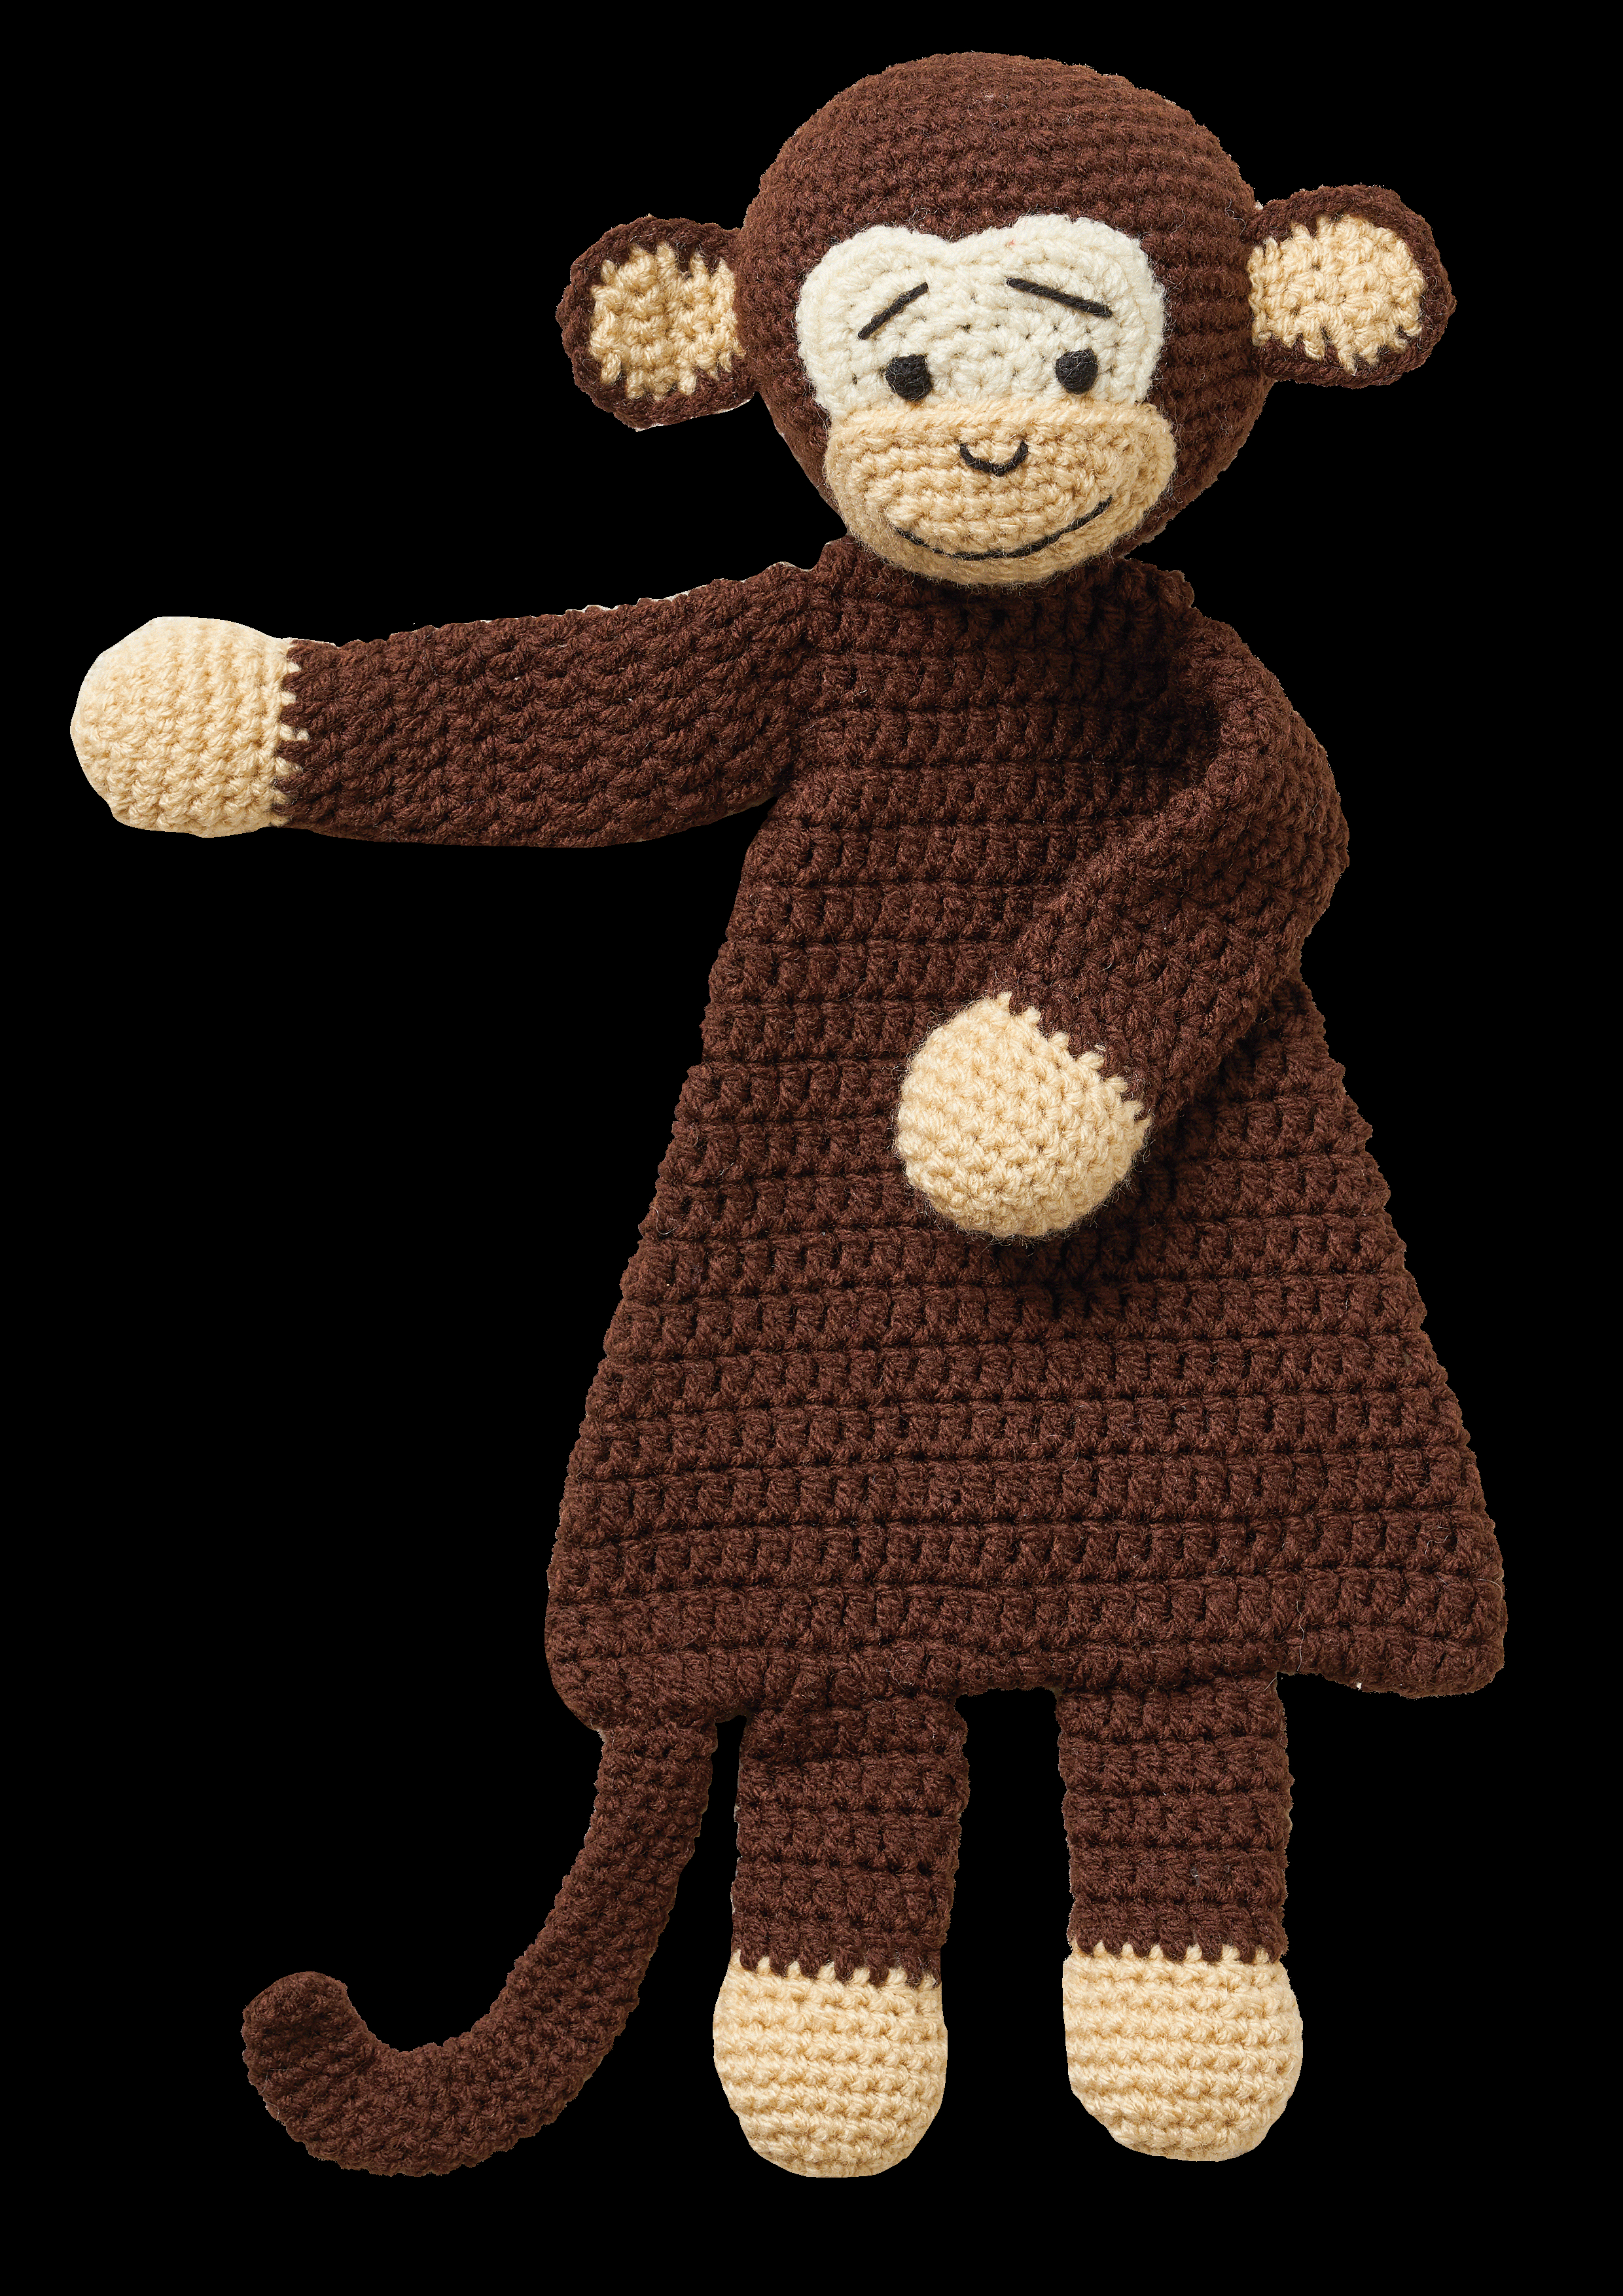 Knitting Patterns For Toys Uk Patons Yarns For Knitting And Crochet Patterns